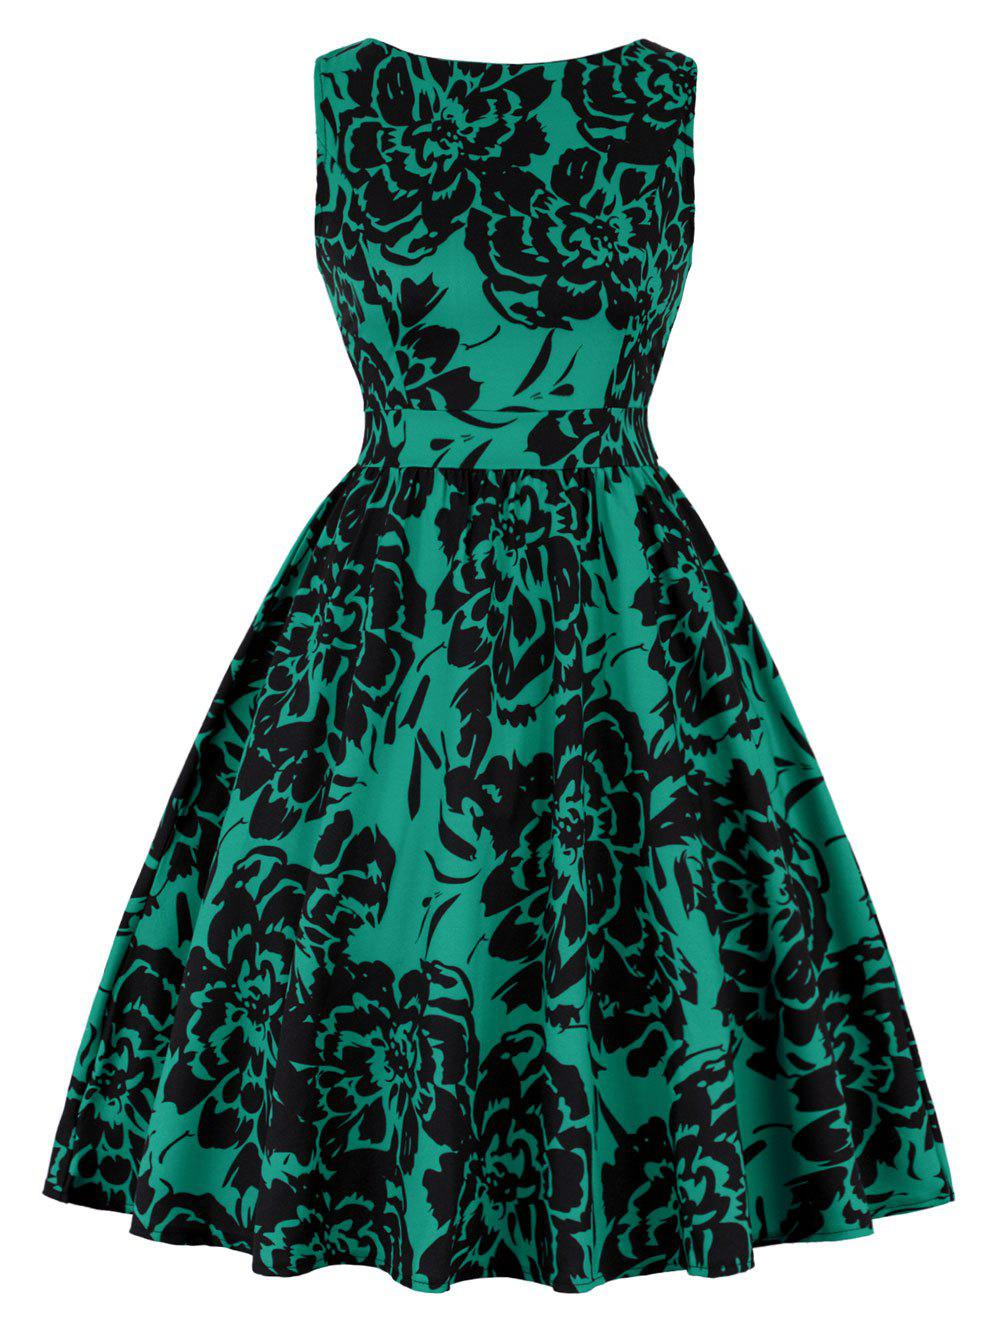 Print High Waist A Line Vintage DressWOMEN<br><br>Size: M; Color: GREEN; Style: Vintage; Material: Polyester,Spandex; Silhouette: A-Line; Dresses Length: Knee-Length; Neckline: Round Collar; Sleeve Length: Sleeveless; Pattern Type: Floral; With Belt: No; Season: Fall,Spring; Weight: 0.4200kg; Package Contents: 1 x Dress;